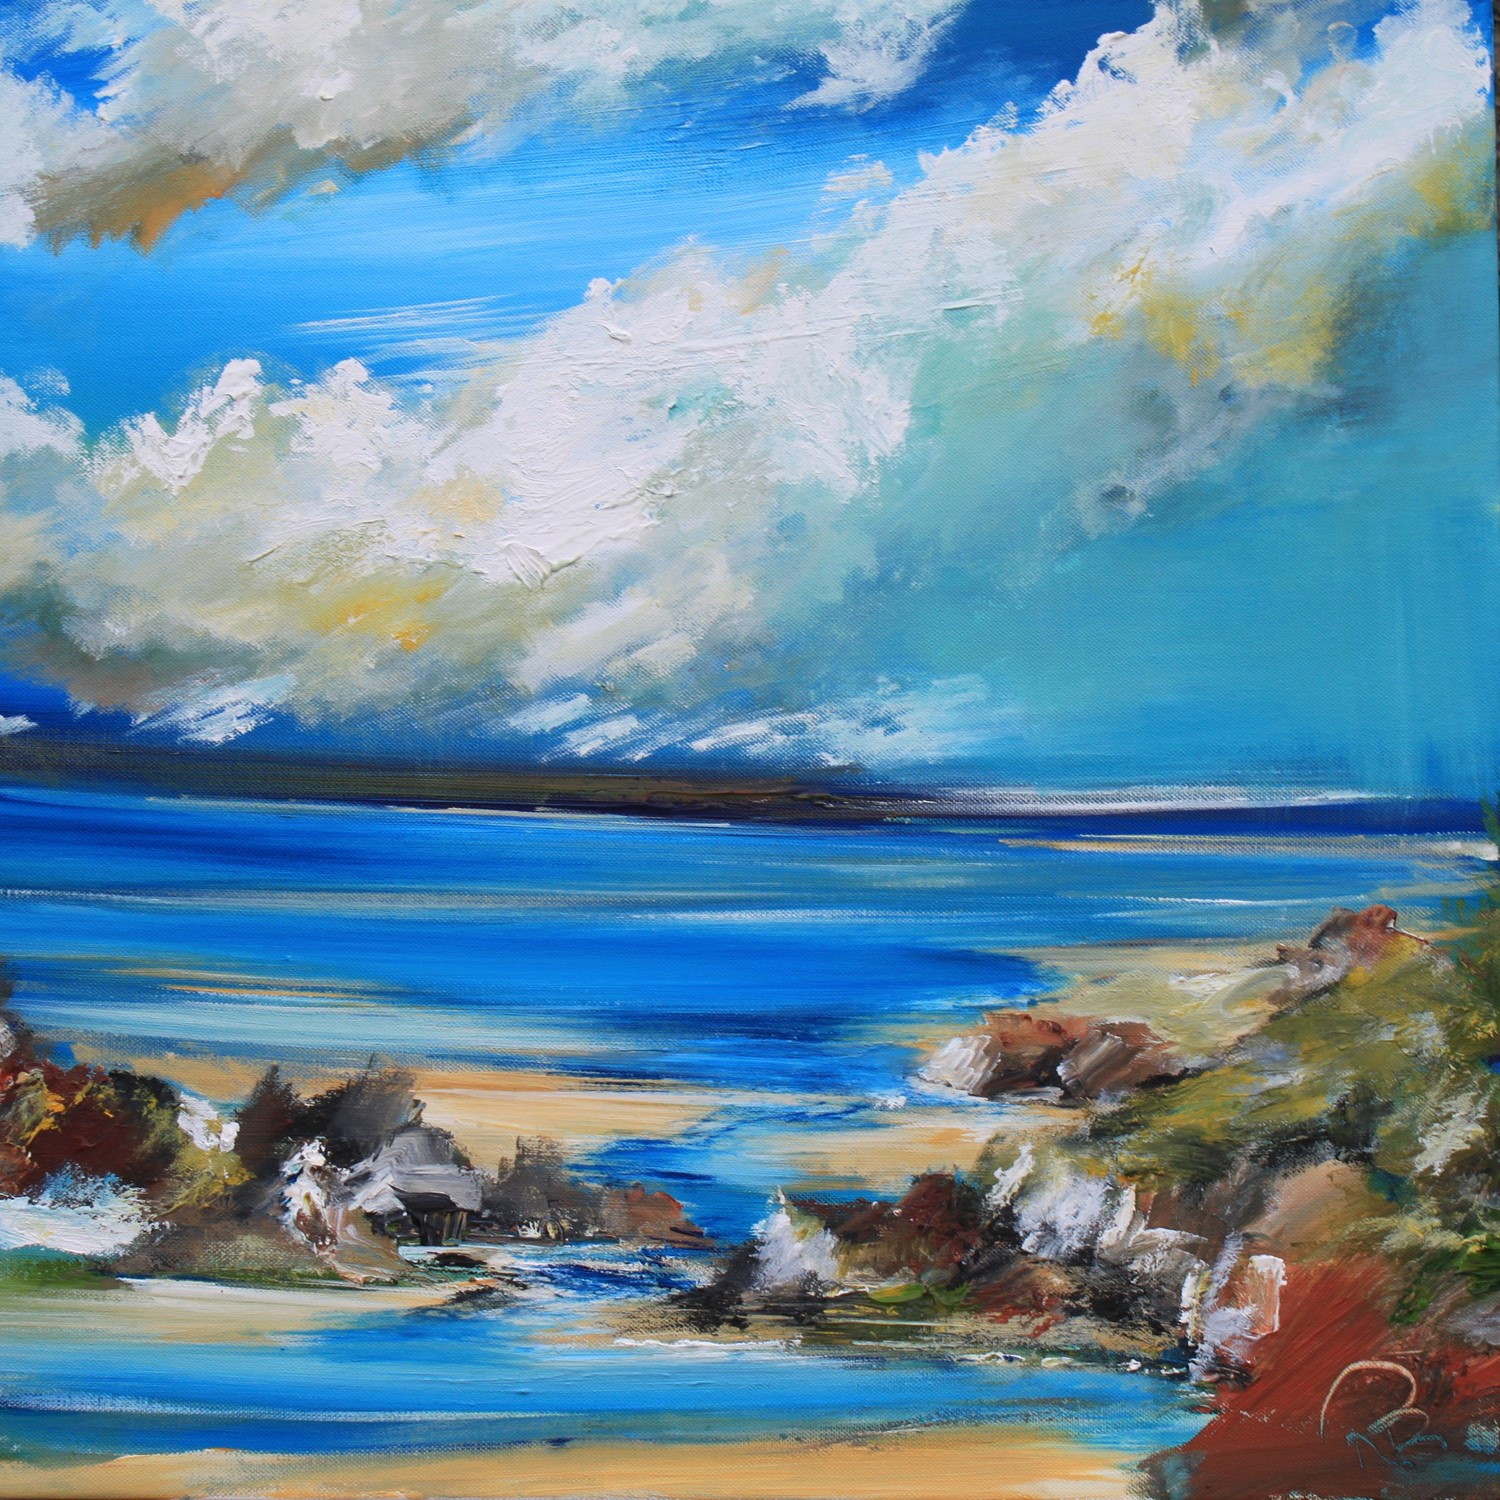 'Summer at the Coast' by artist Rosanne Barr